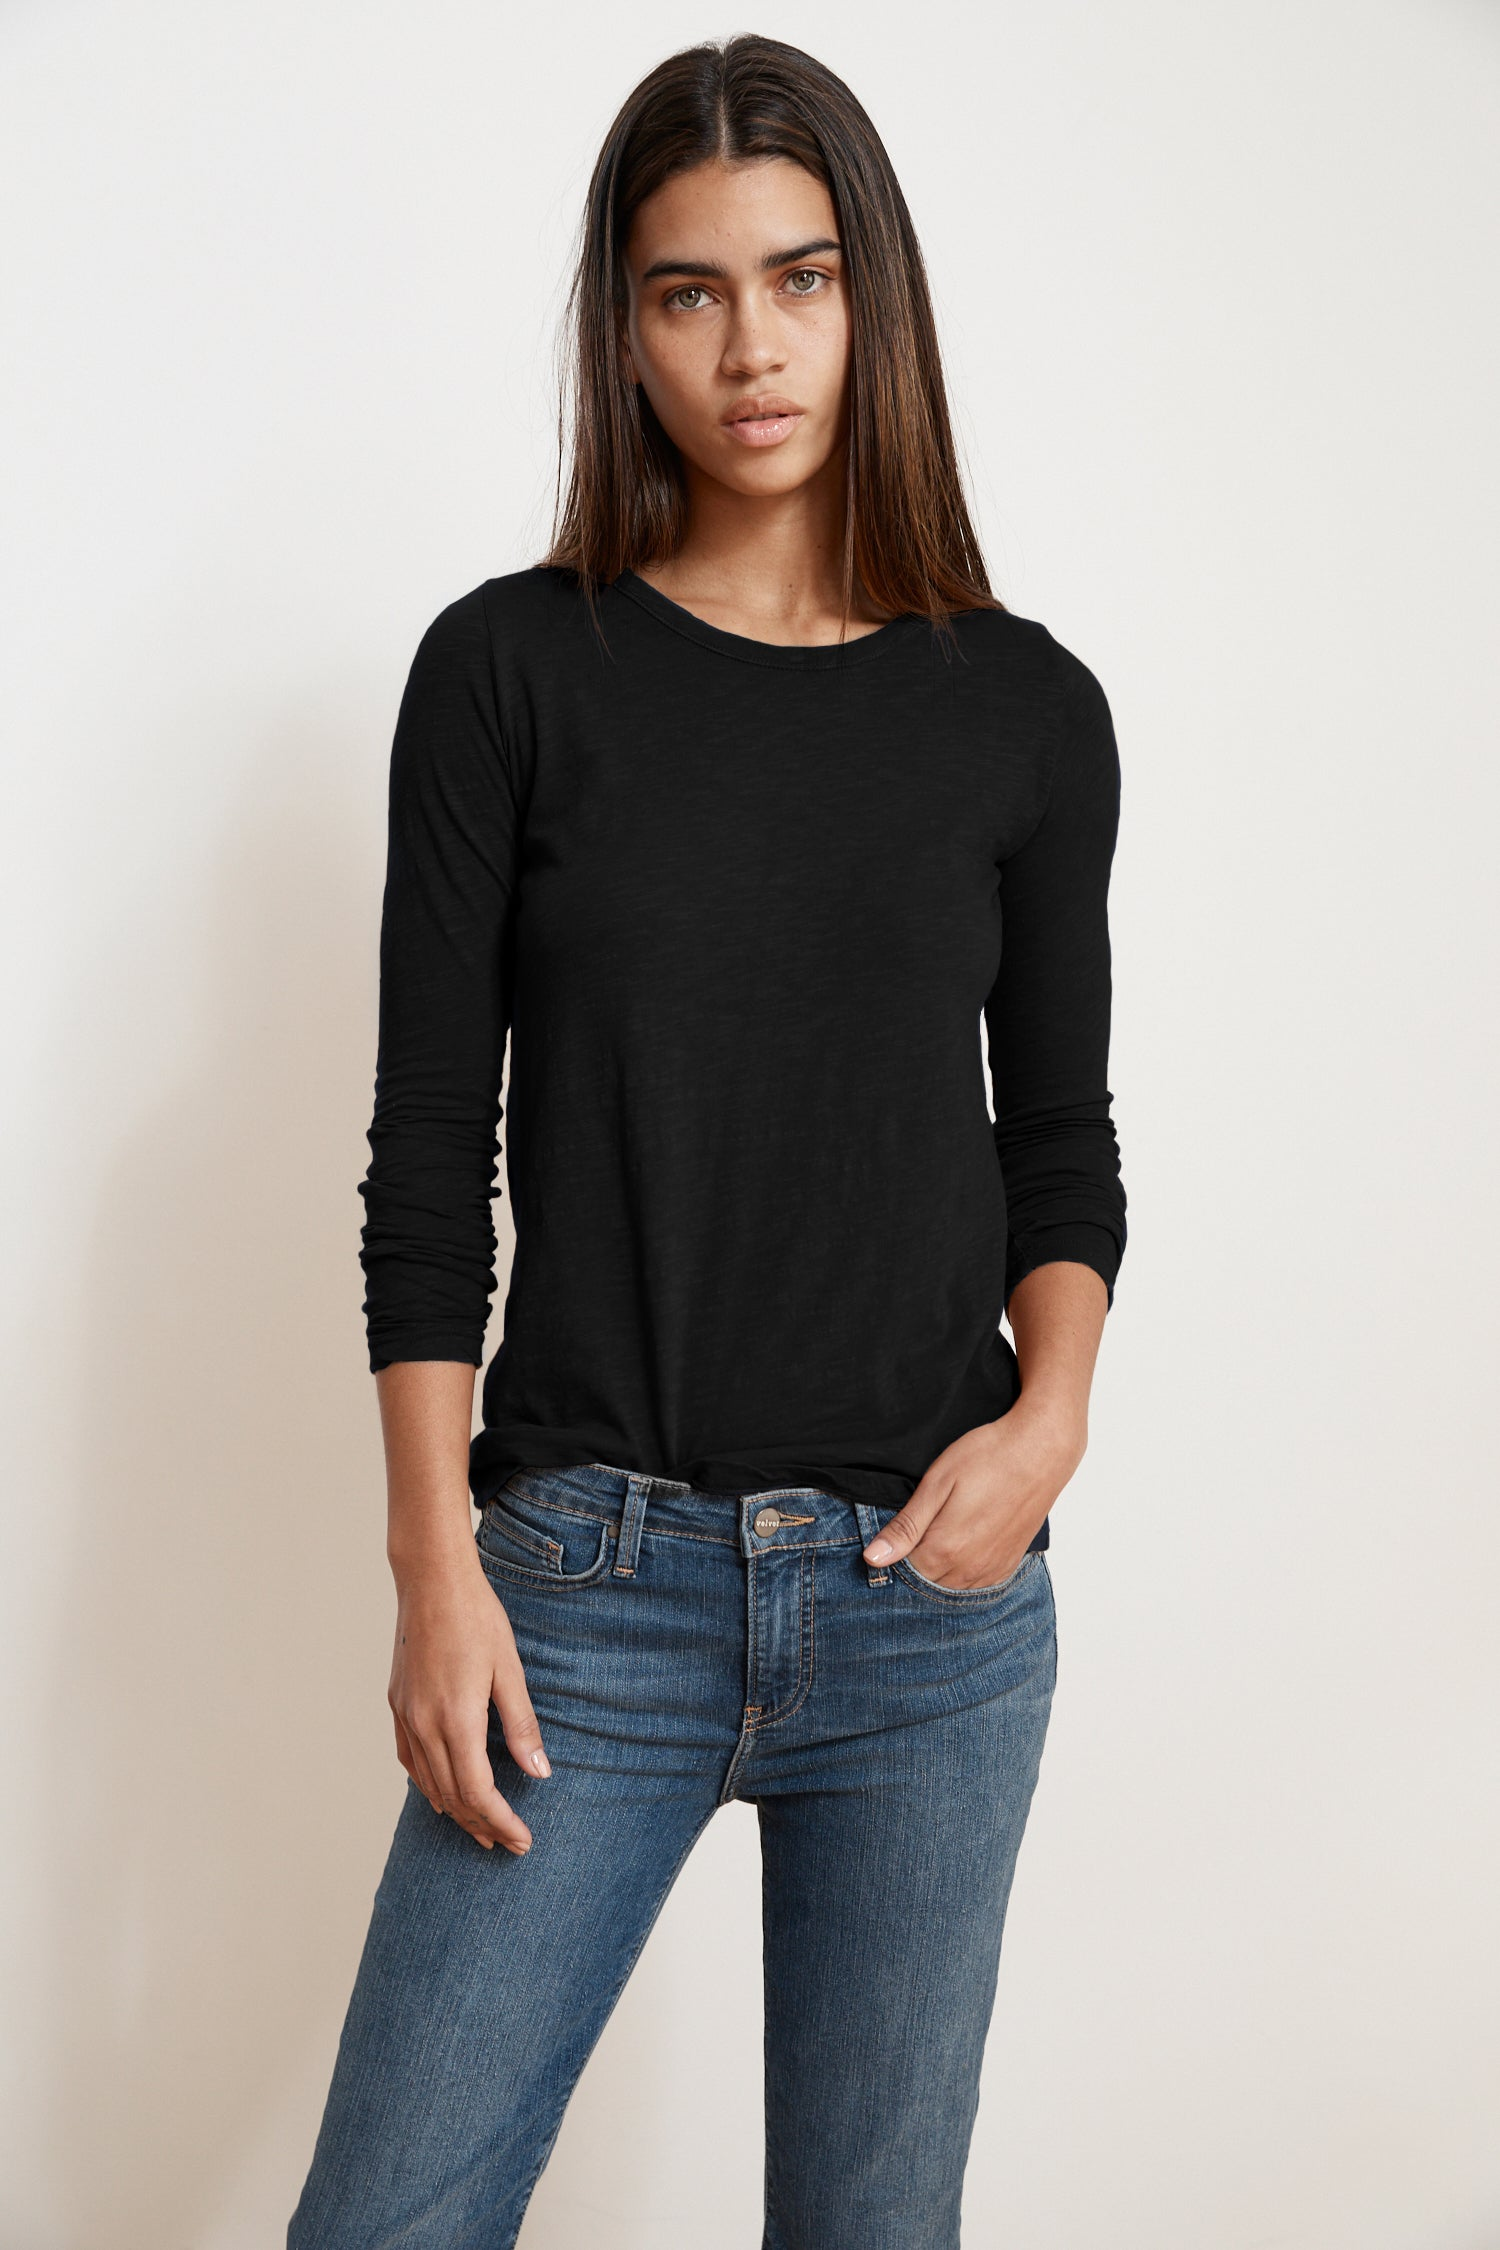 LIZZIE ORIGINAL SLUB LONG SLEEVE TEE IN BLACK